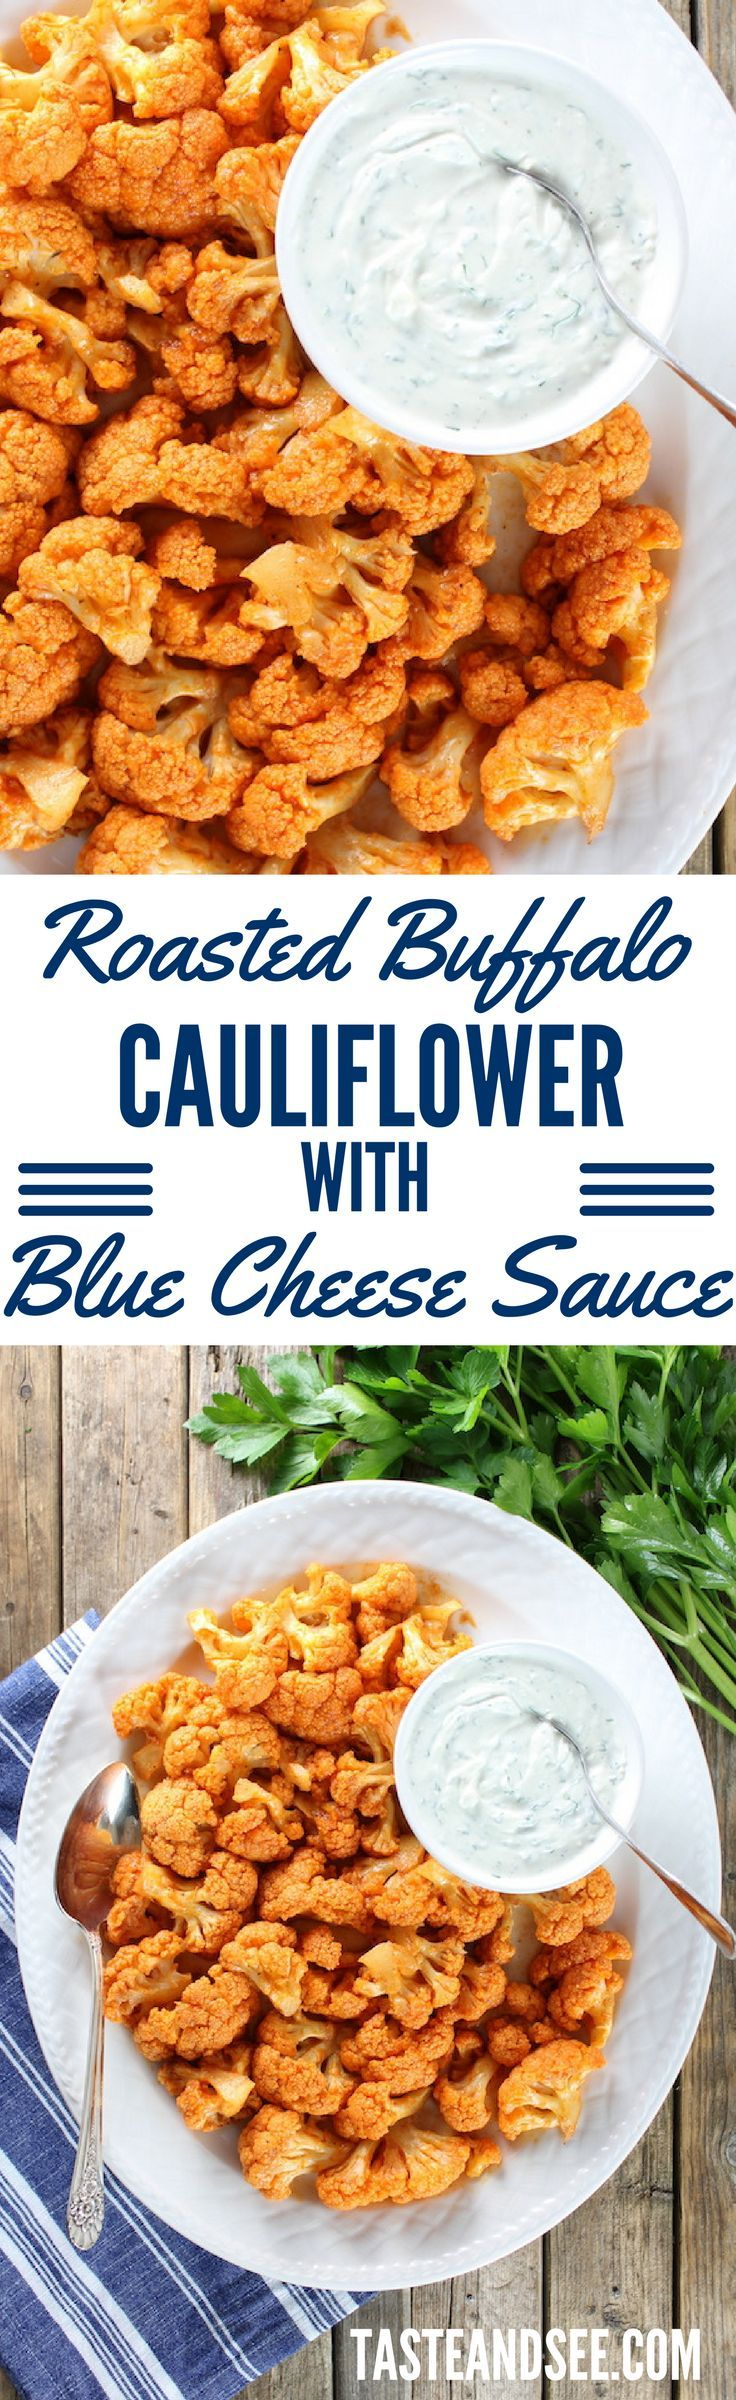 Roasted Buffalo Cauliflower With Blue Cheese Sauce